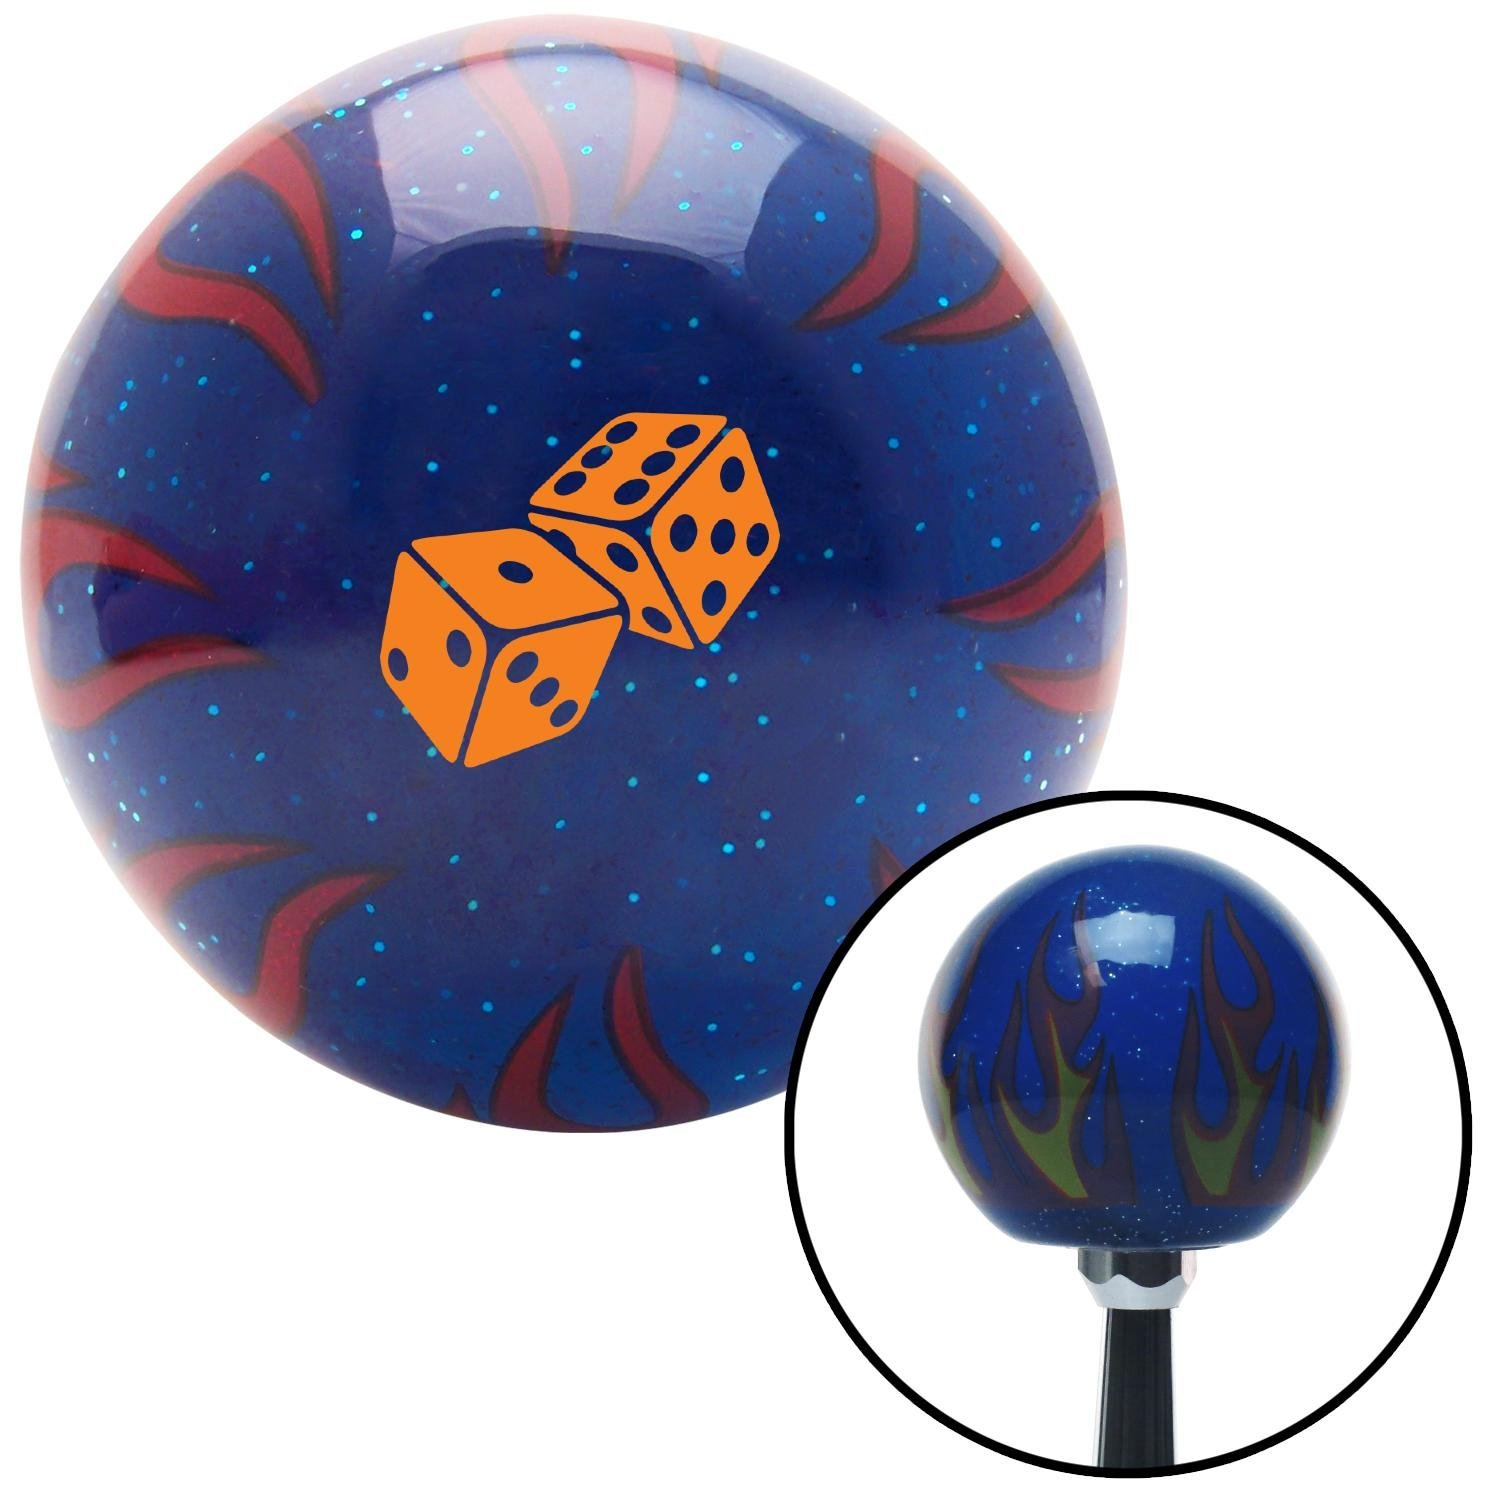 American Shifter 297840 Shift Knob Orange Set of Dice Blue Flame Metal Flake with M16 x 1.5 Insert